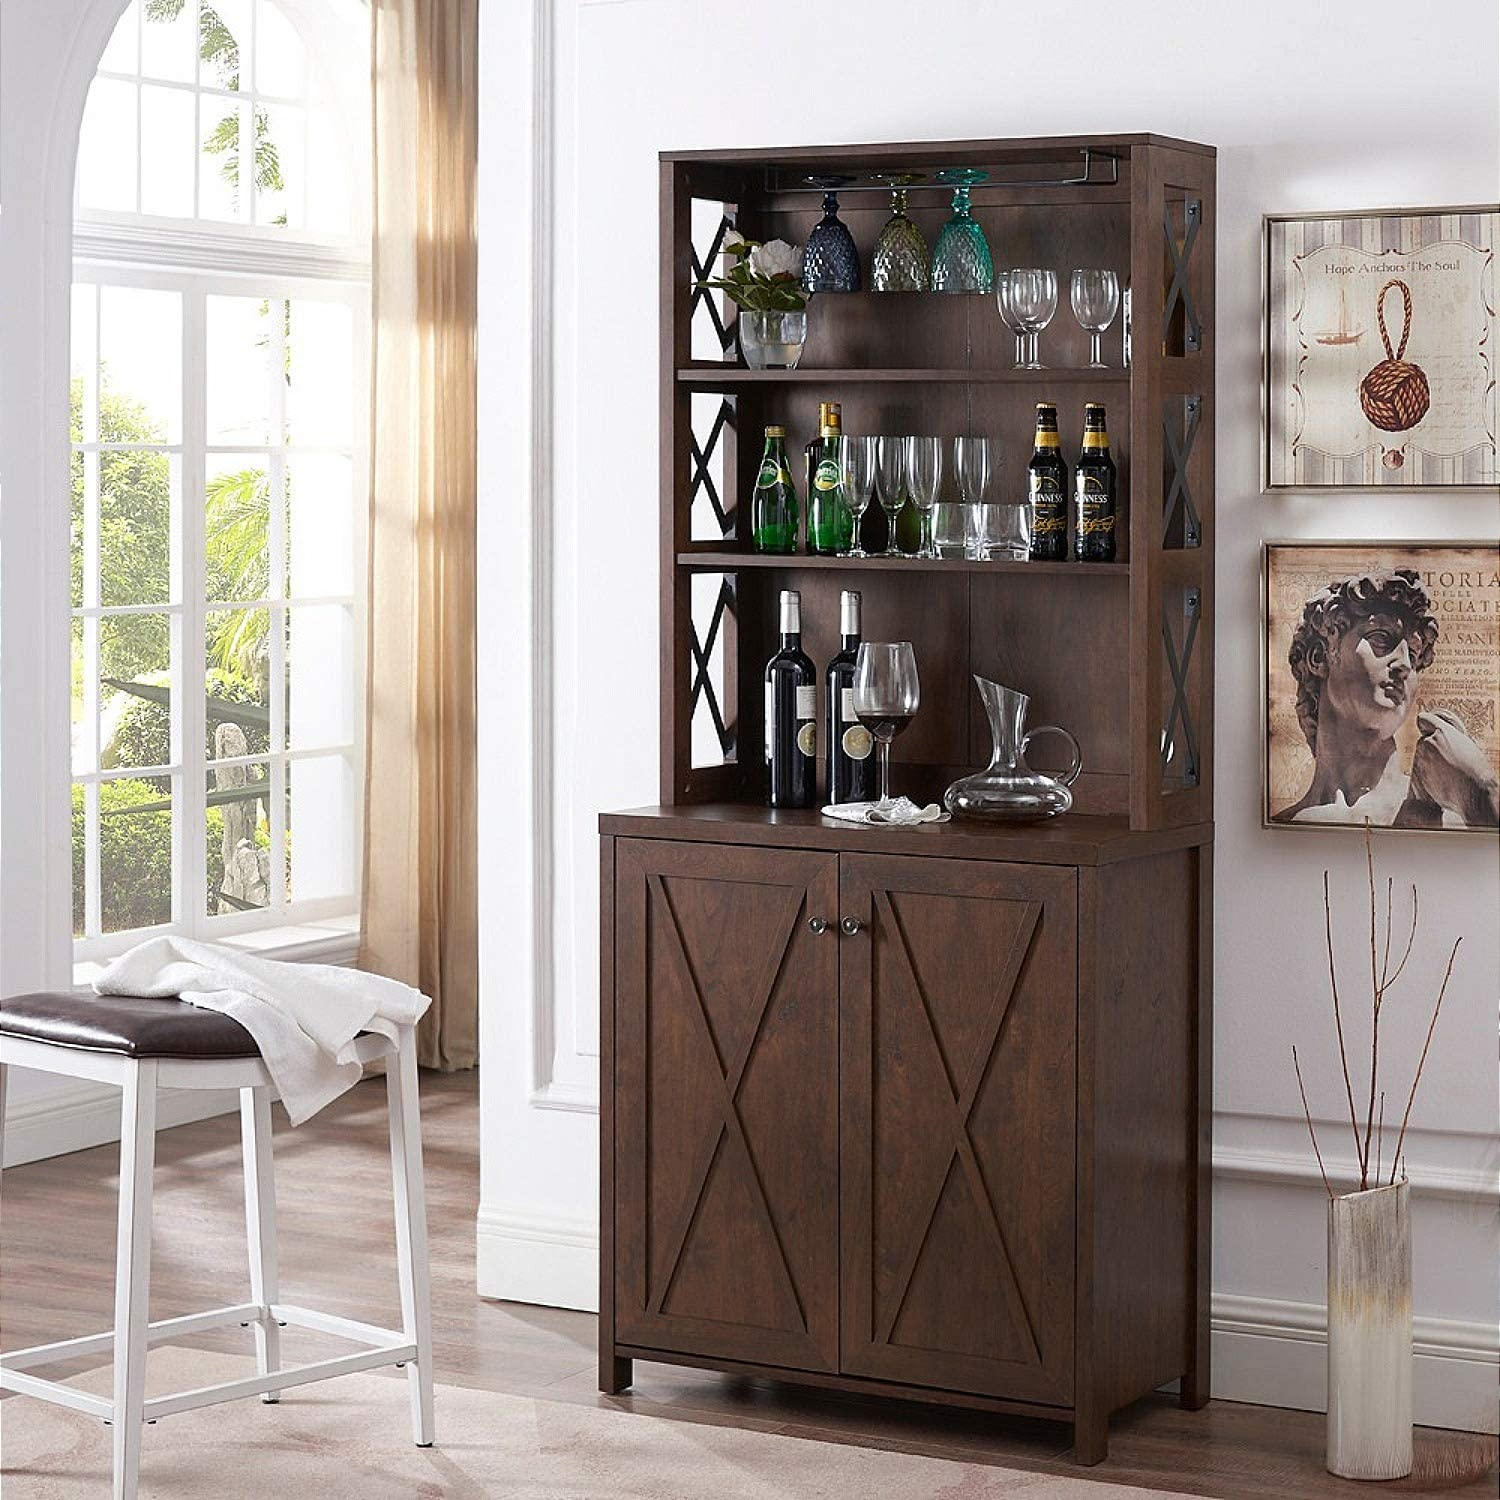 Elegant Bar Cabinet   Kitchen Cabinet with Microwave Stand (Mahogany)